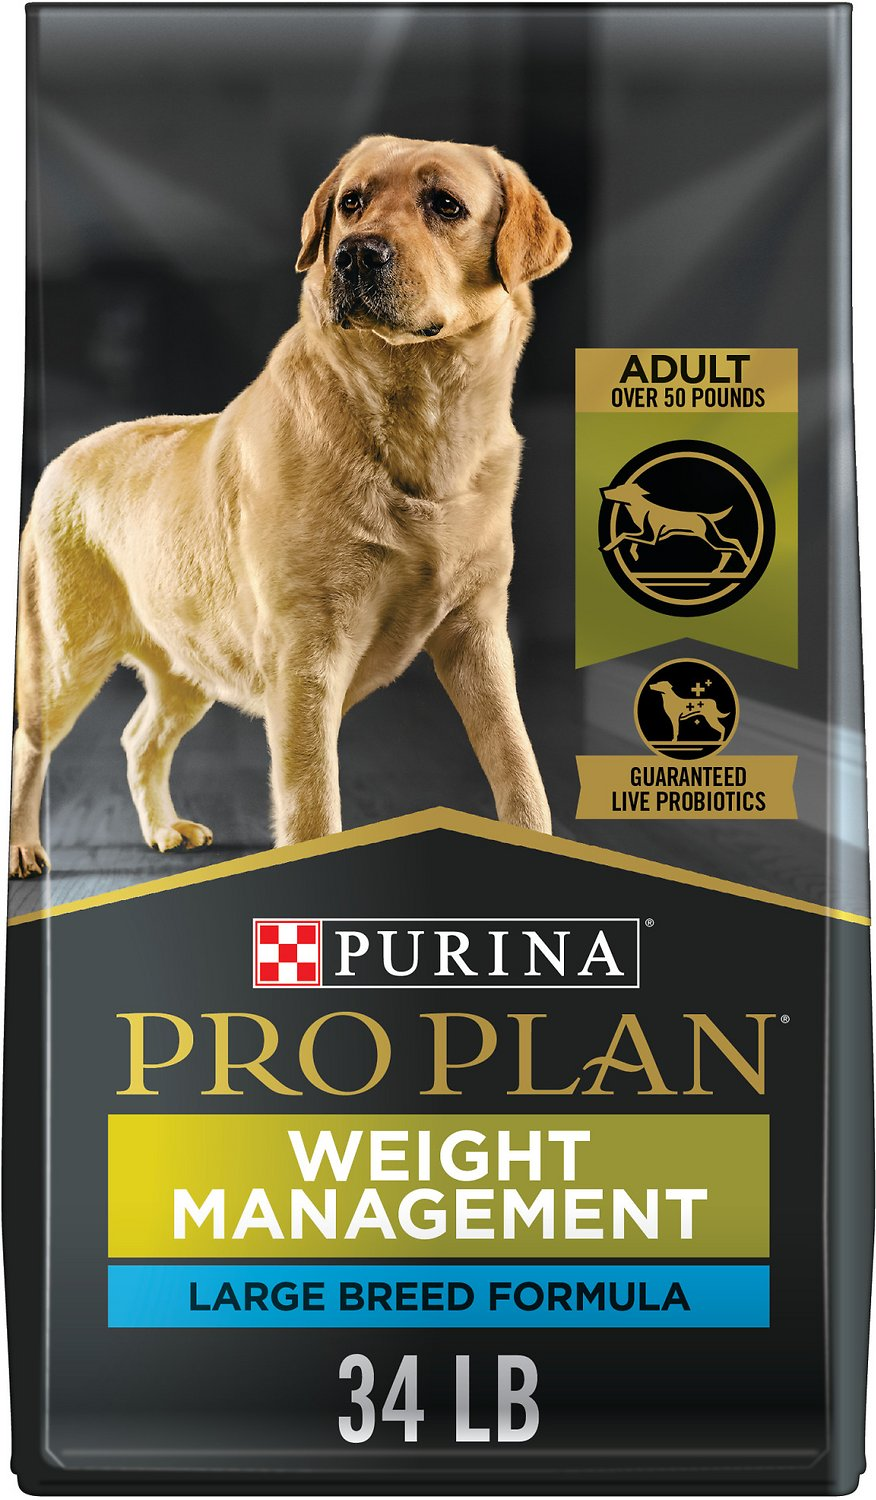 Purina Pro Plan Cat Food >> Purina Pro Plan Focus Adult Large Breed Weight Management ...